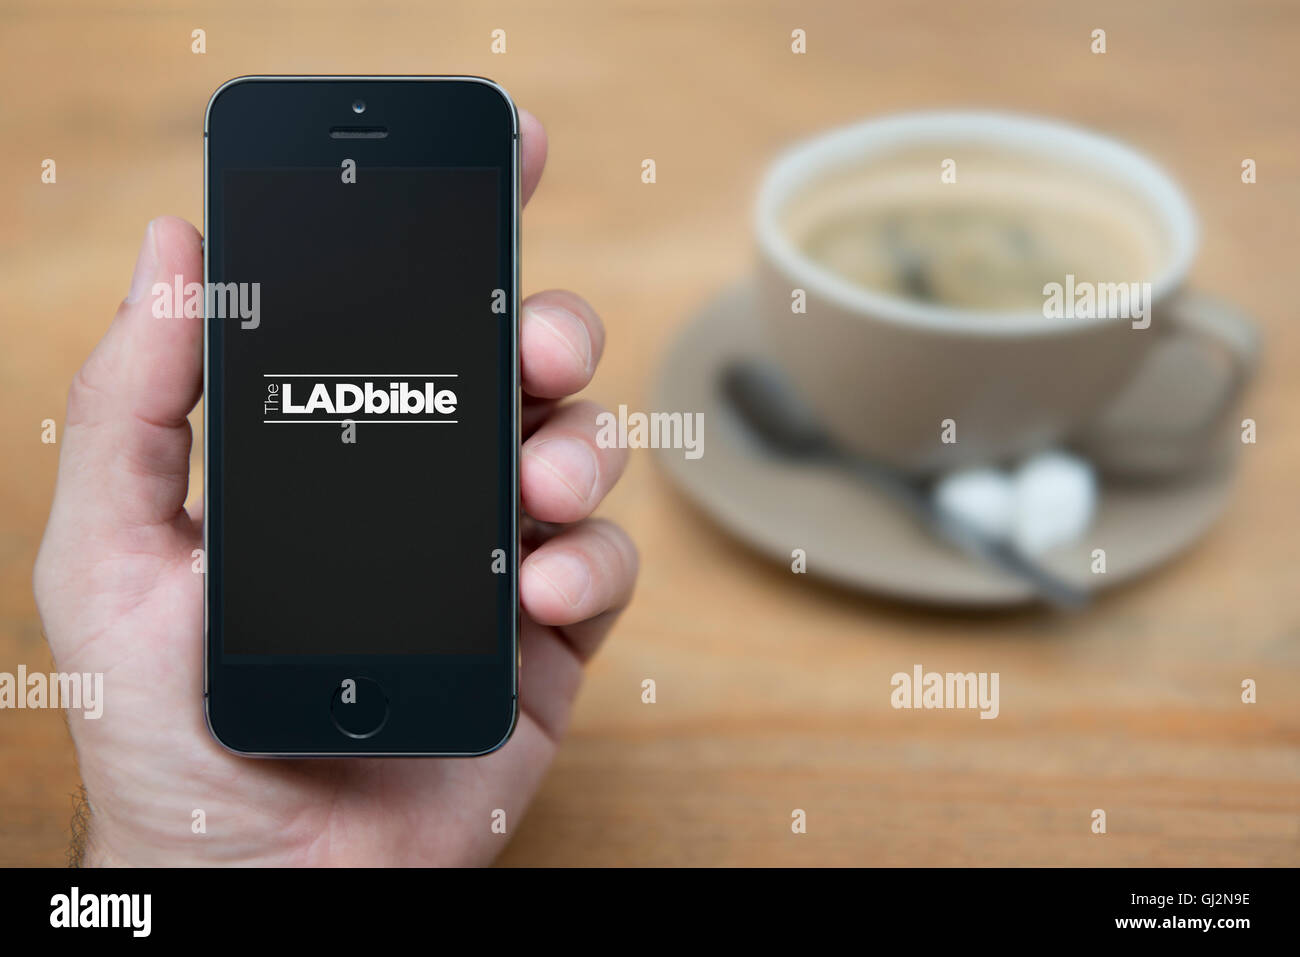 A man looks at his iPhone which displays the Lad Bible logo, while sat with a cup of coffee (Editorial use only). - Stock Image